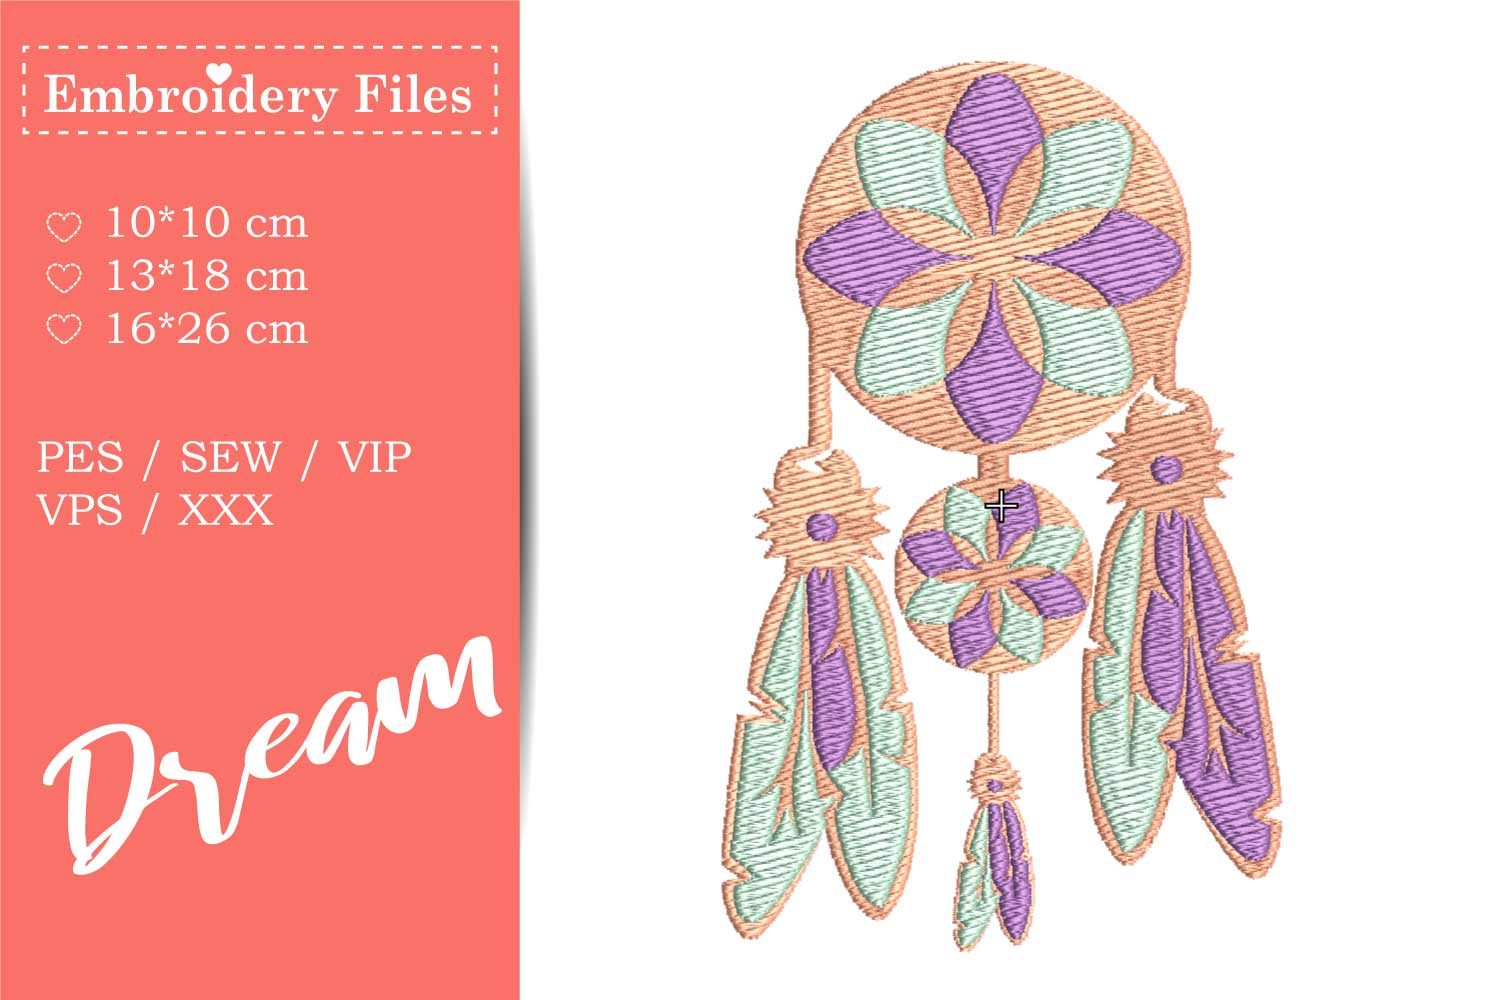 Dreamcatcher - Embroidery File for Beginners example image 2